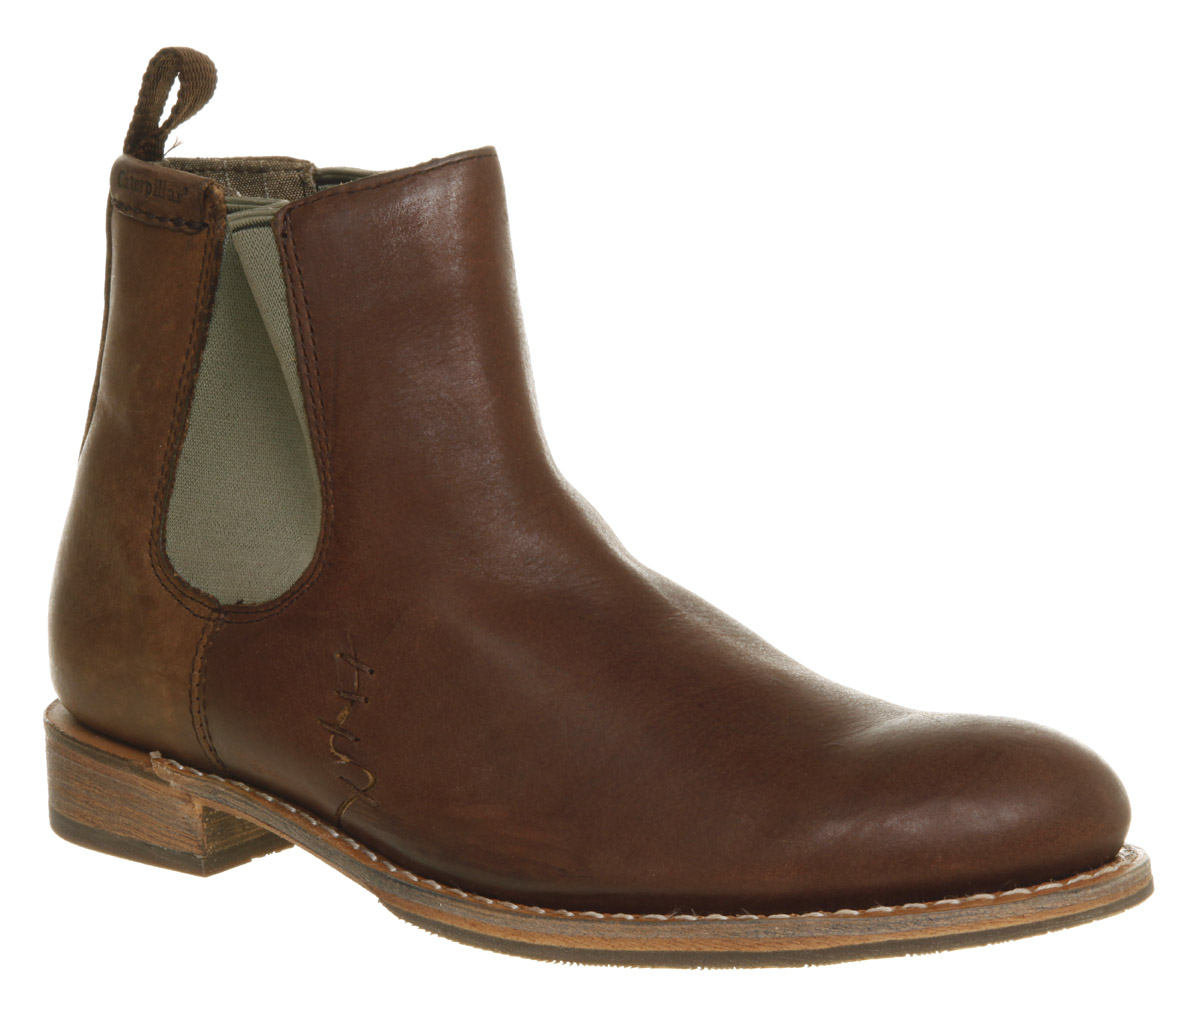 mens caterpillar zachary chelsea boot brown leather boots